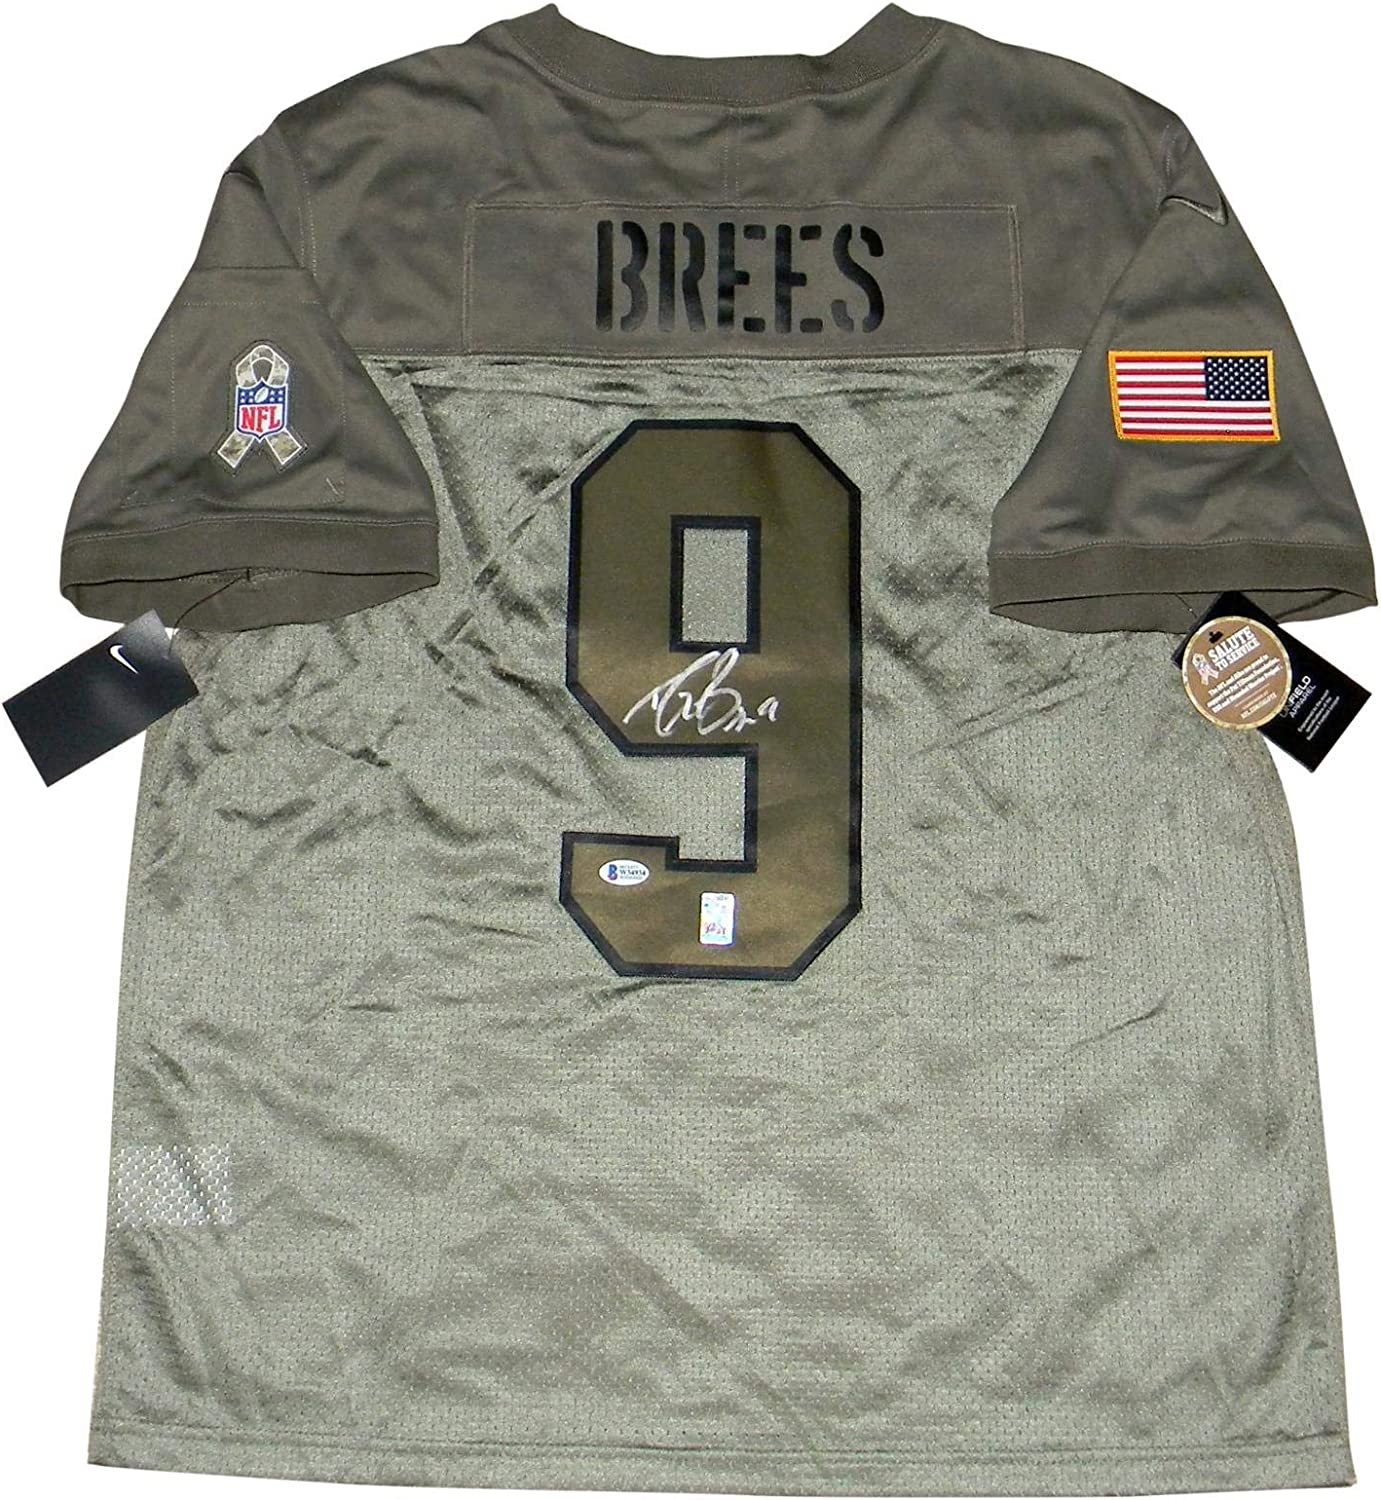 Decepcionado desesperación Contribuir  Drew Brees Signed New Orleans Saints Salute To Service Nike Limited Jersey  Bas - Autographed NFL Jerseys at Amazon's Sports Collectibles Store